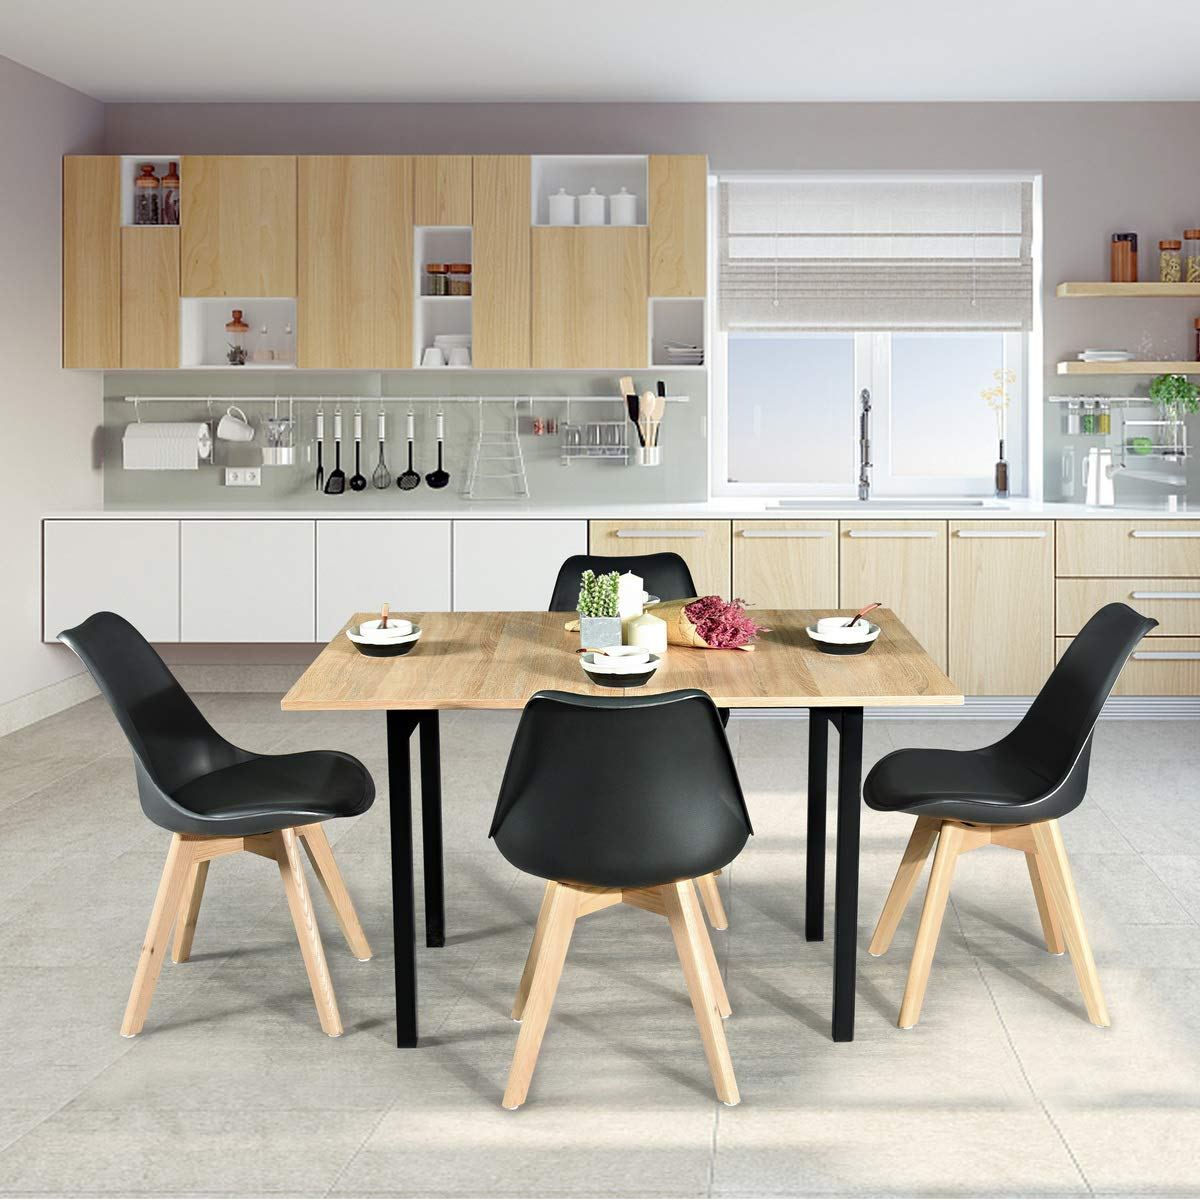 HOMY CASA Multifunction Save Space Wooden Extendable Metal Frame Dining Table Rectangel Kitchen Table for Kitchen,Living Room,Office,Patio